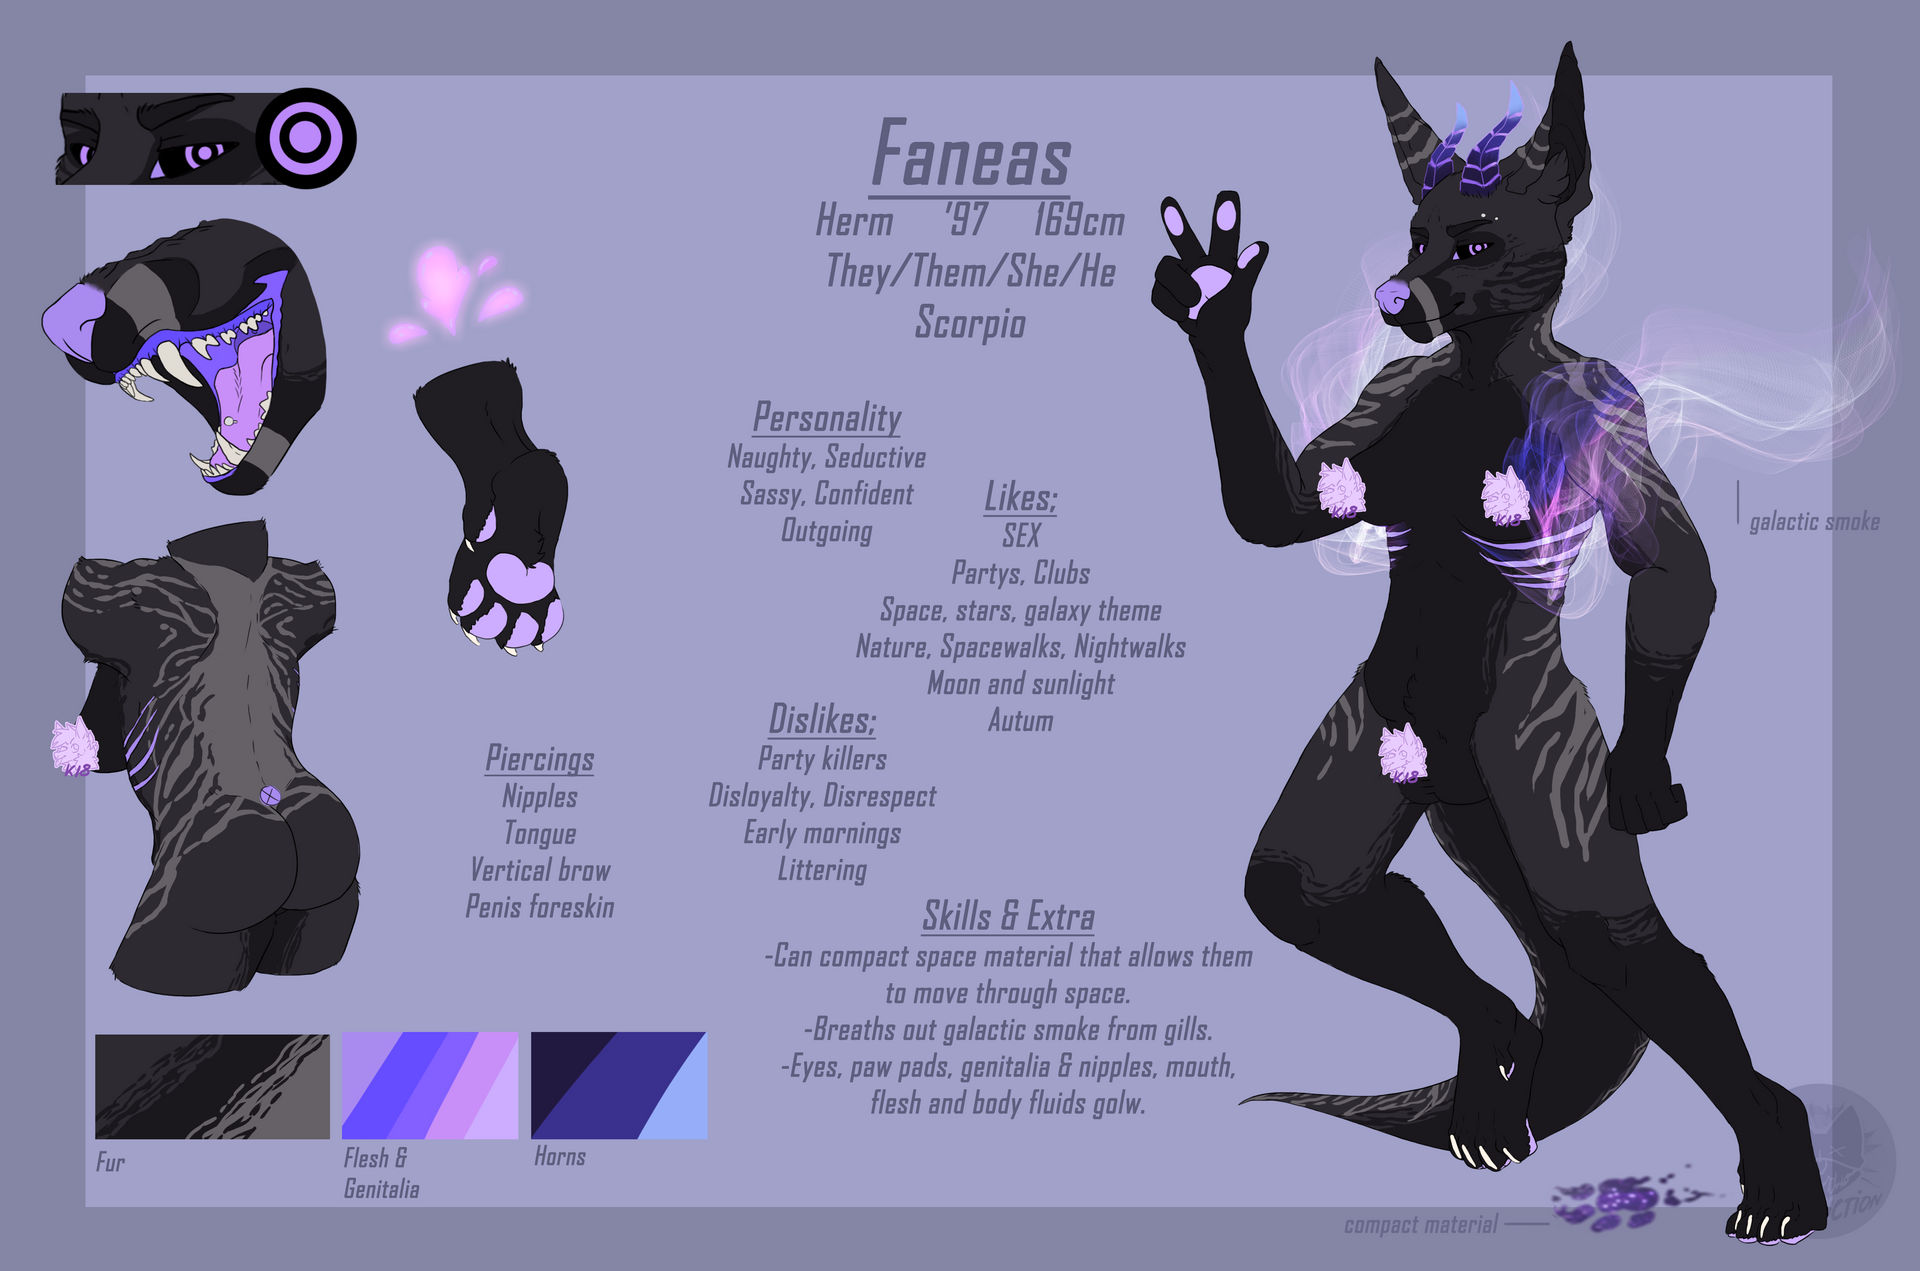 faneas_reference_by_catstruction_ddcwsmo-fullview.jpg